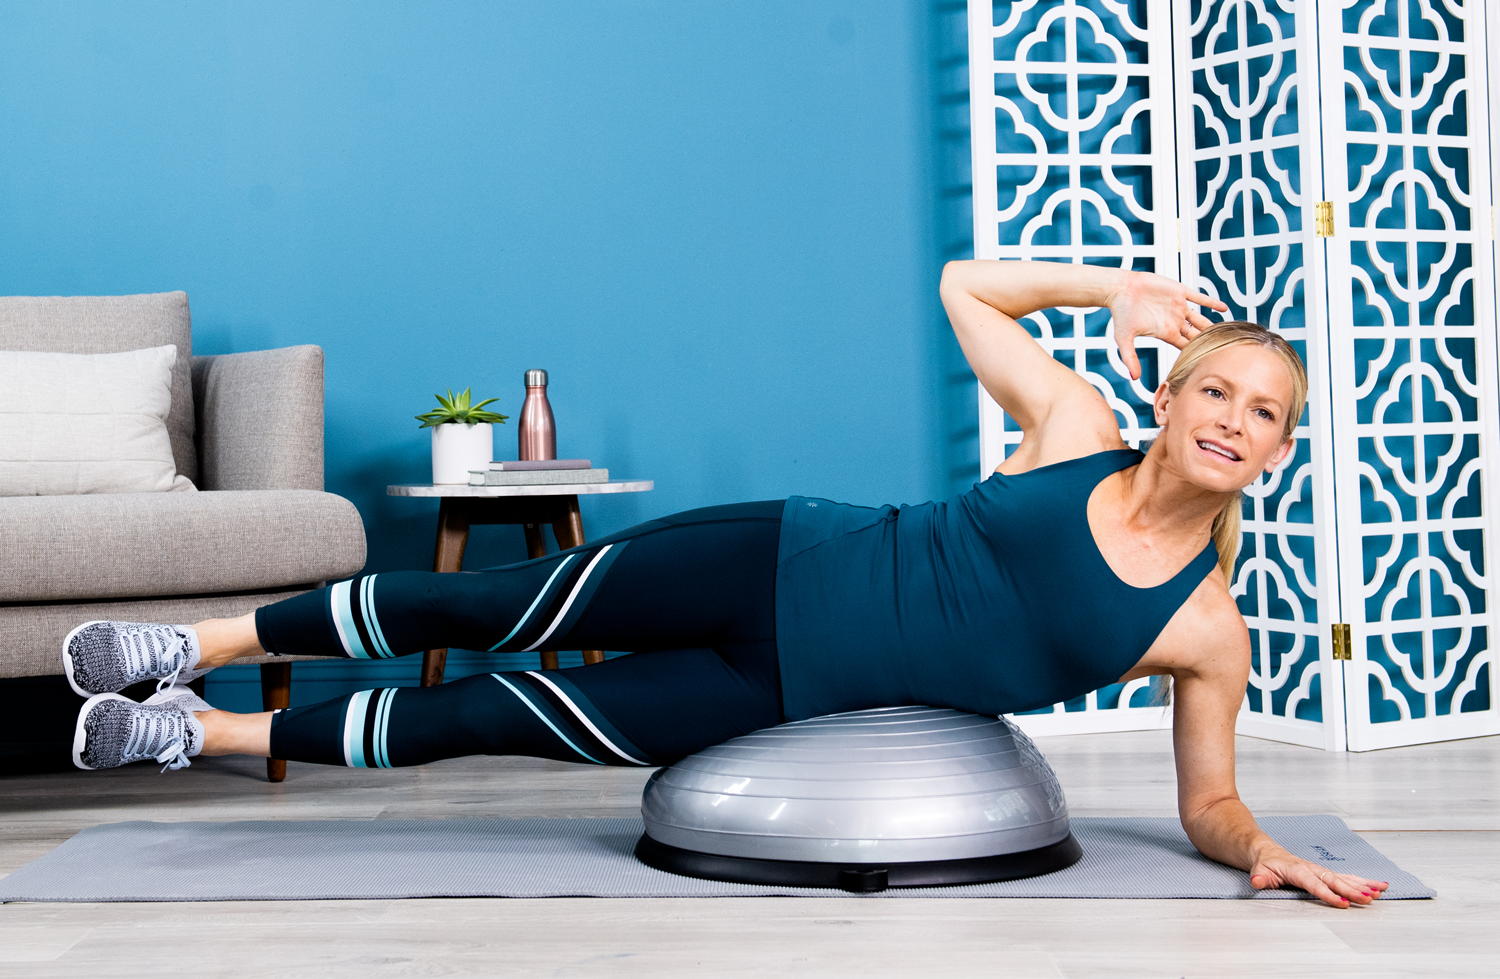 10 Best BOSU Ball Exercises for a Full-Body Workout